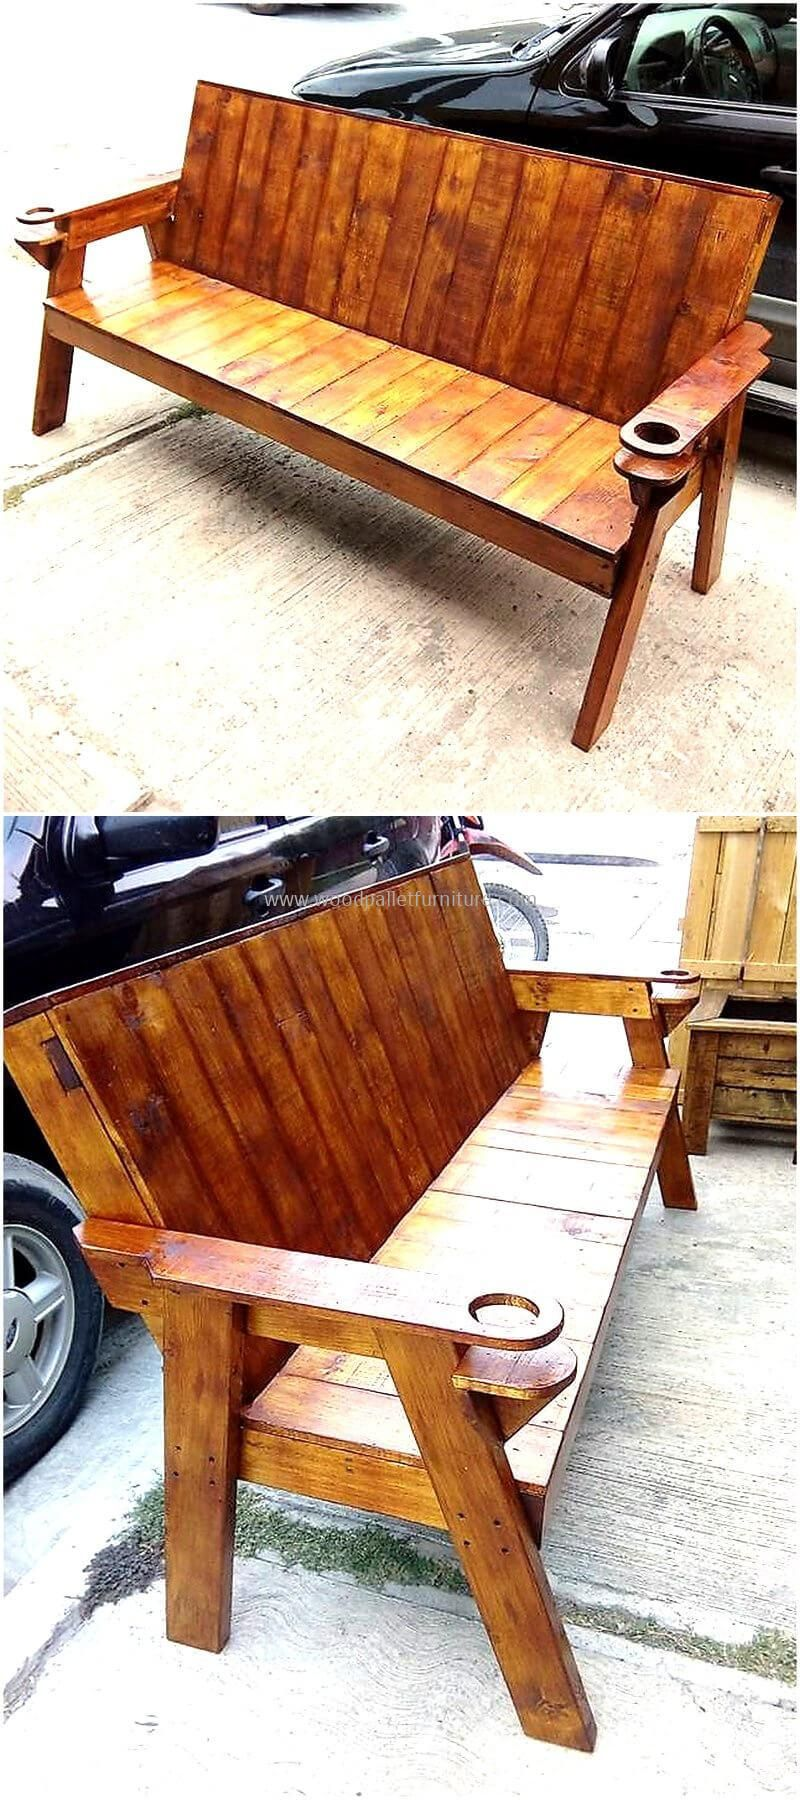 used pallet furniture. Convert Old Used Pallets Into Something Useful Pallet Furniture T